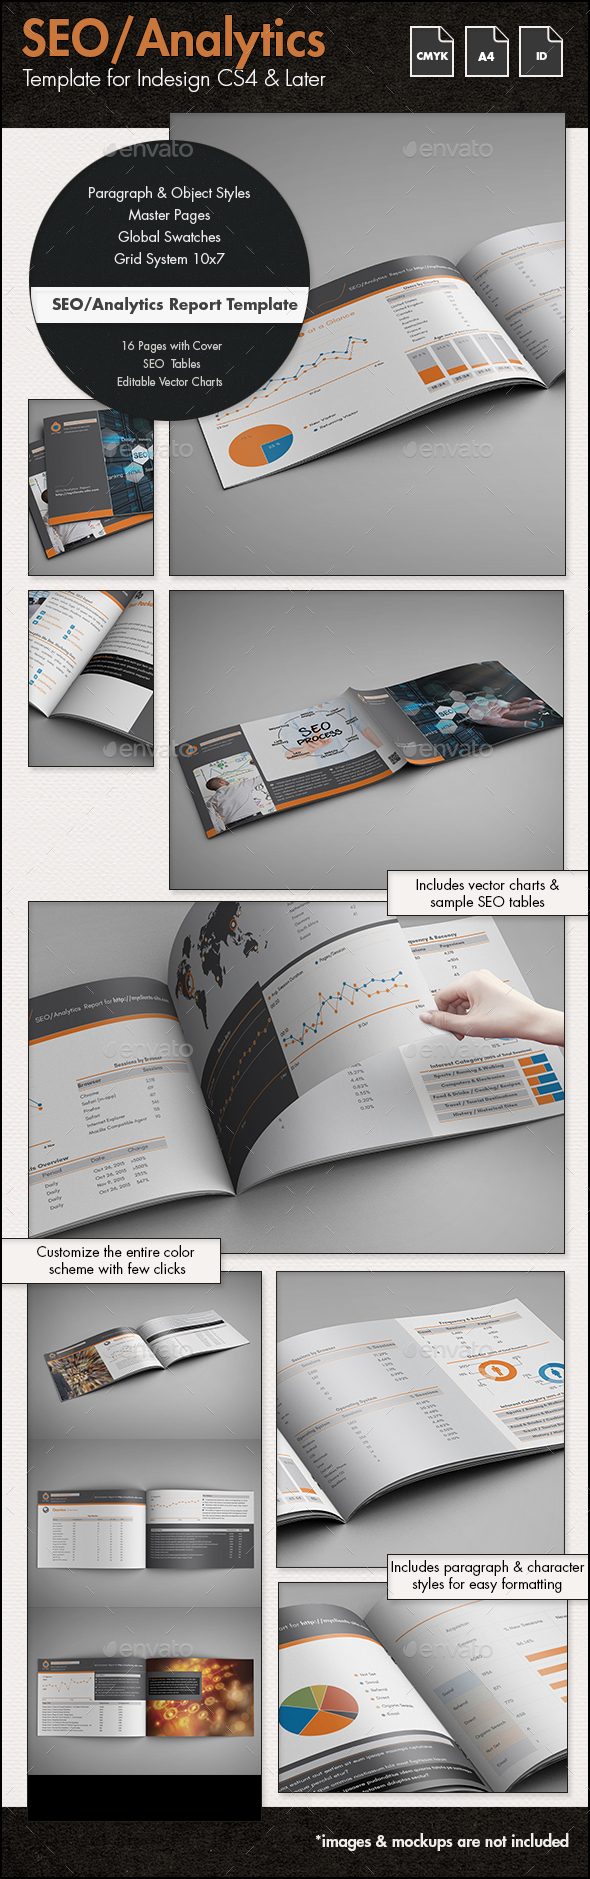 SEO Report / Proposal Template - A4 Landscape by sthalassinos ...